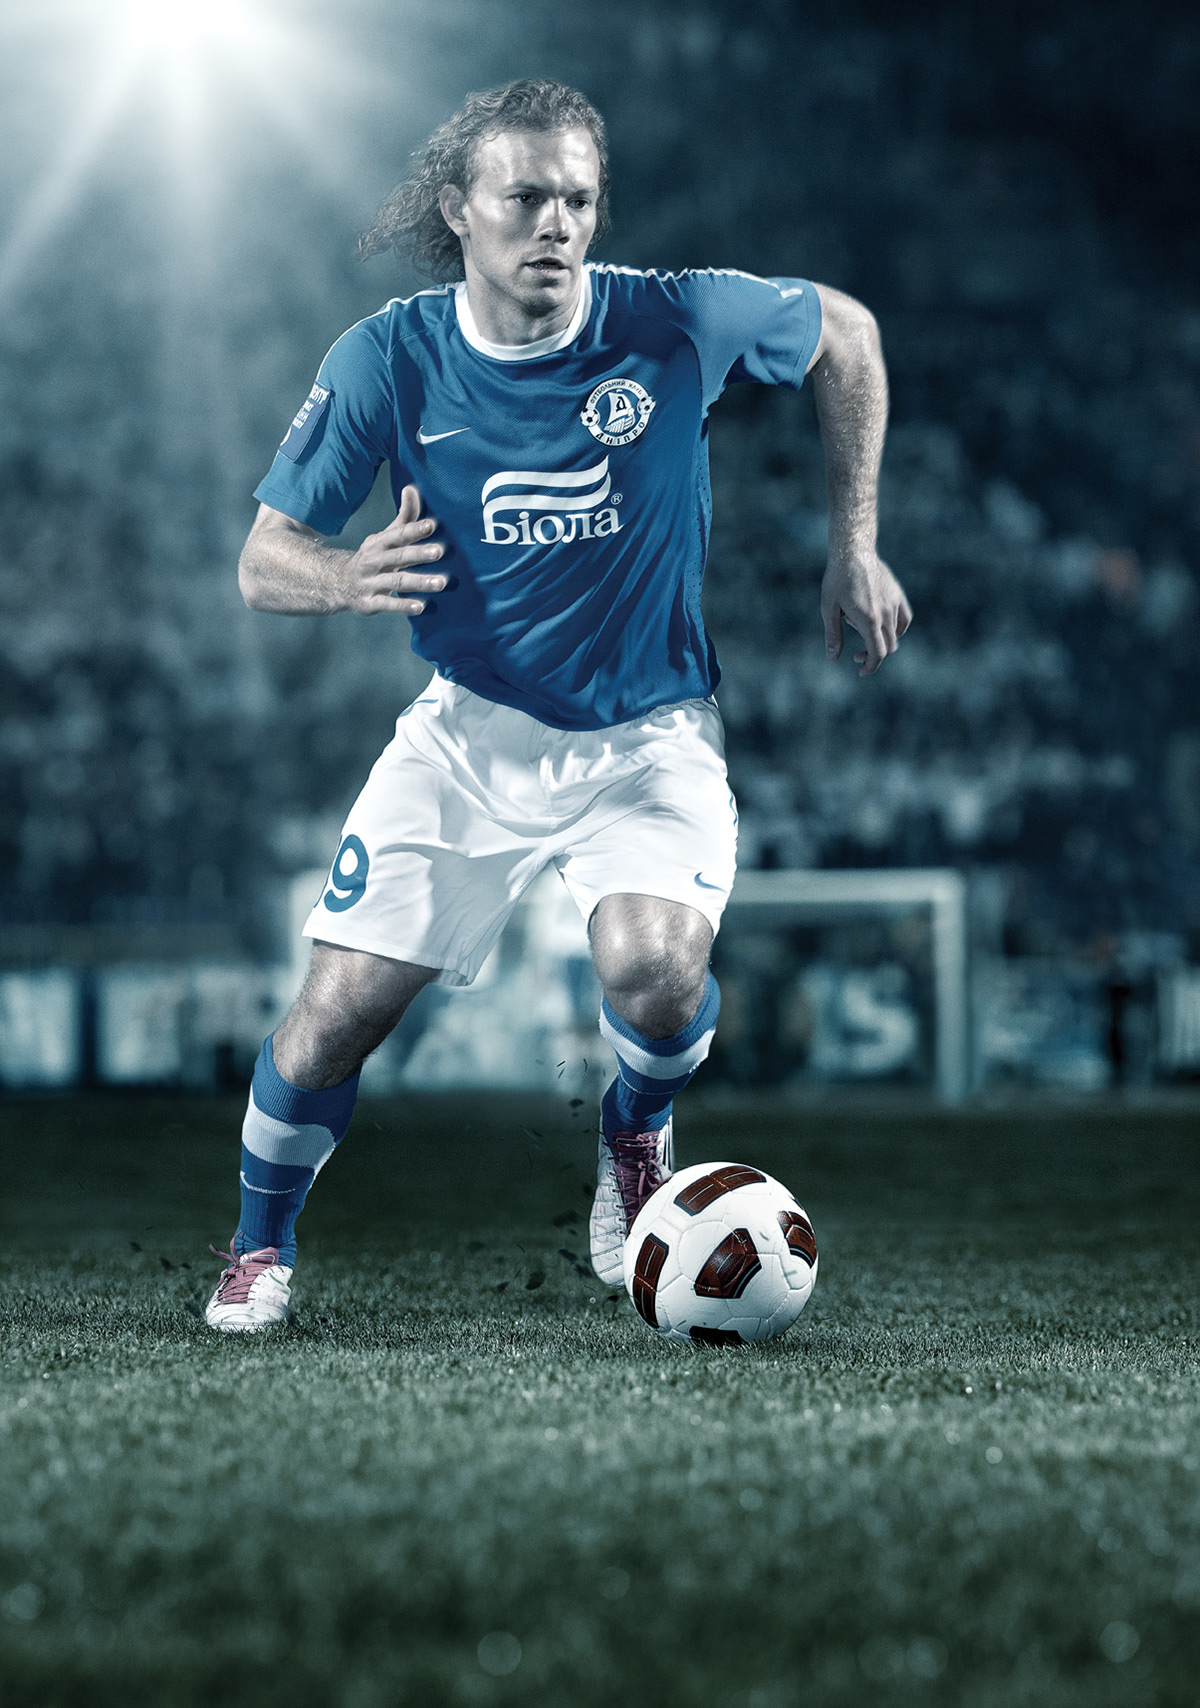 sports sports photography football soccer dynamic images soccer player Soccer Photography